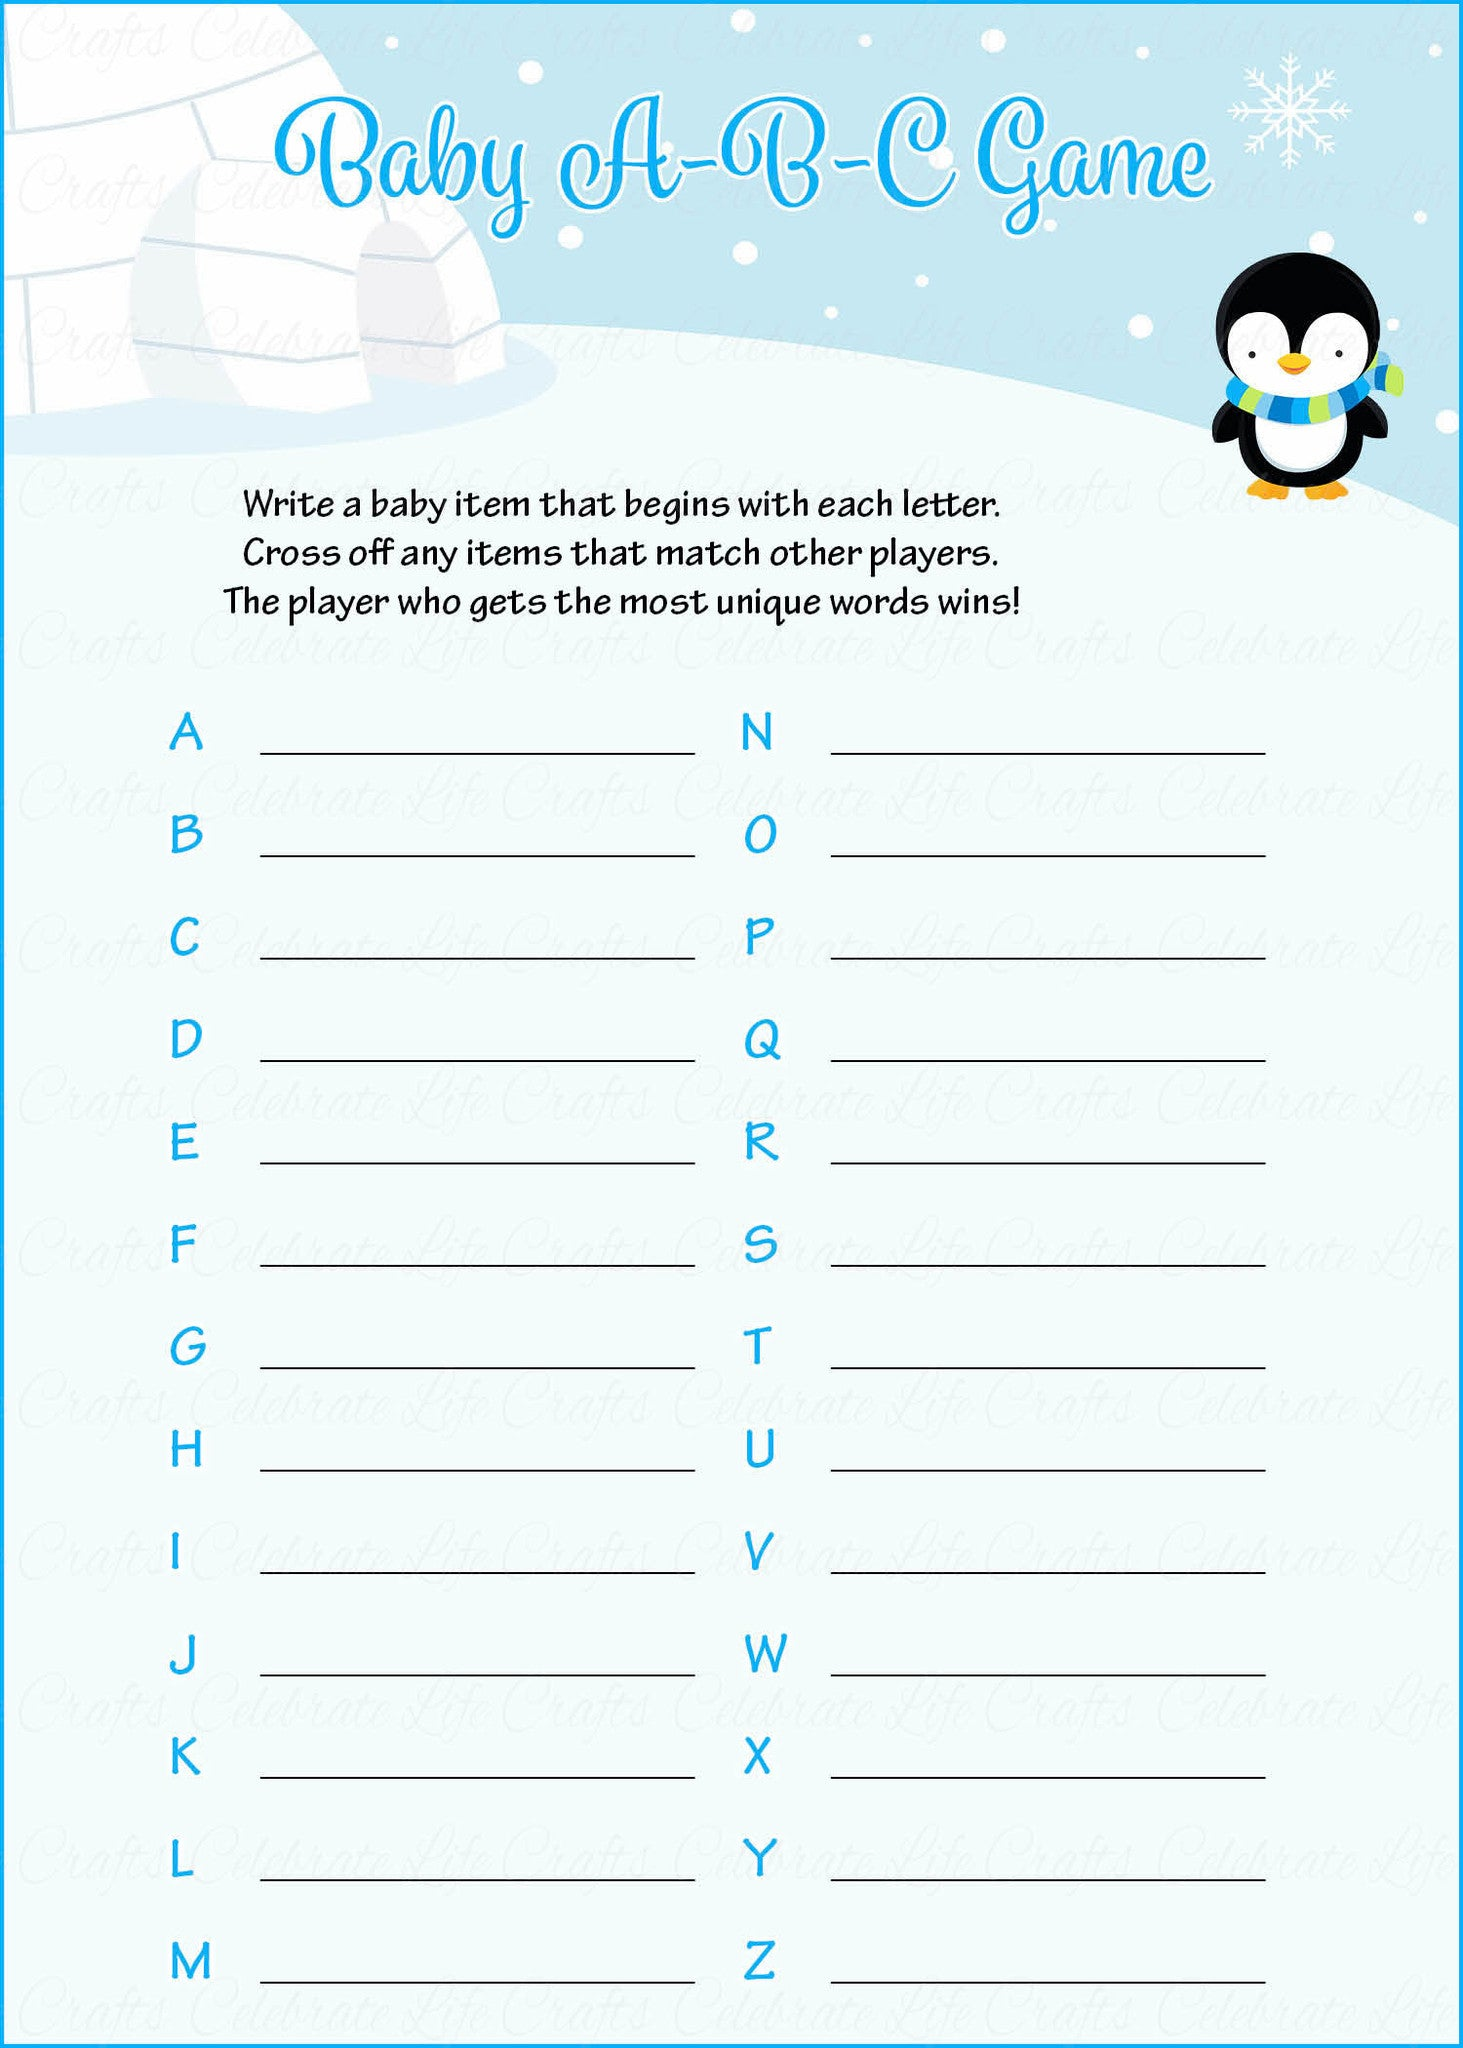 Baby ABC Game   Printable Download   Blue Penguin Winter Baby Shower Game    B22006.